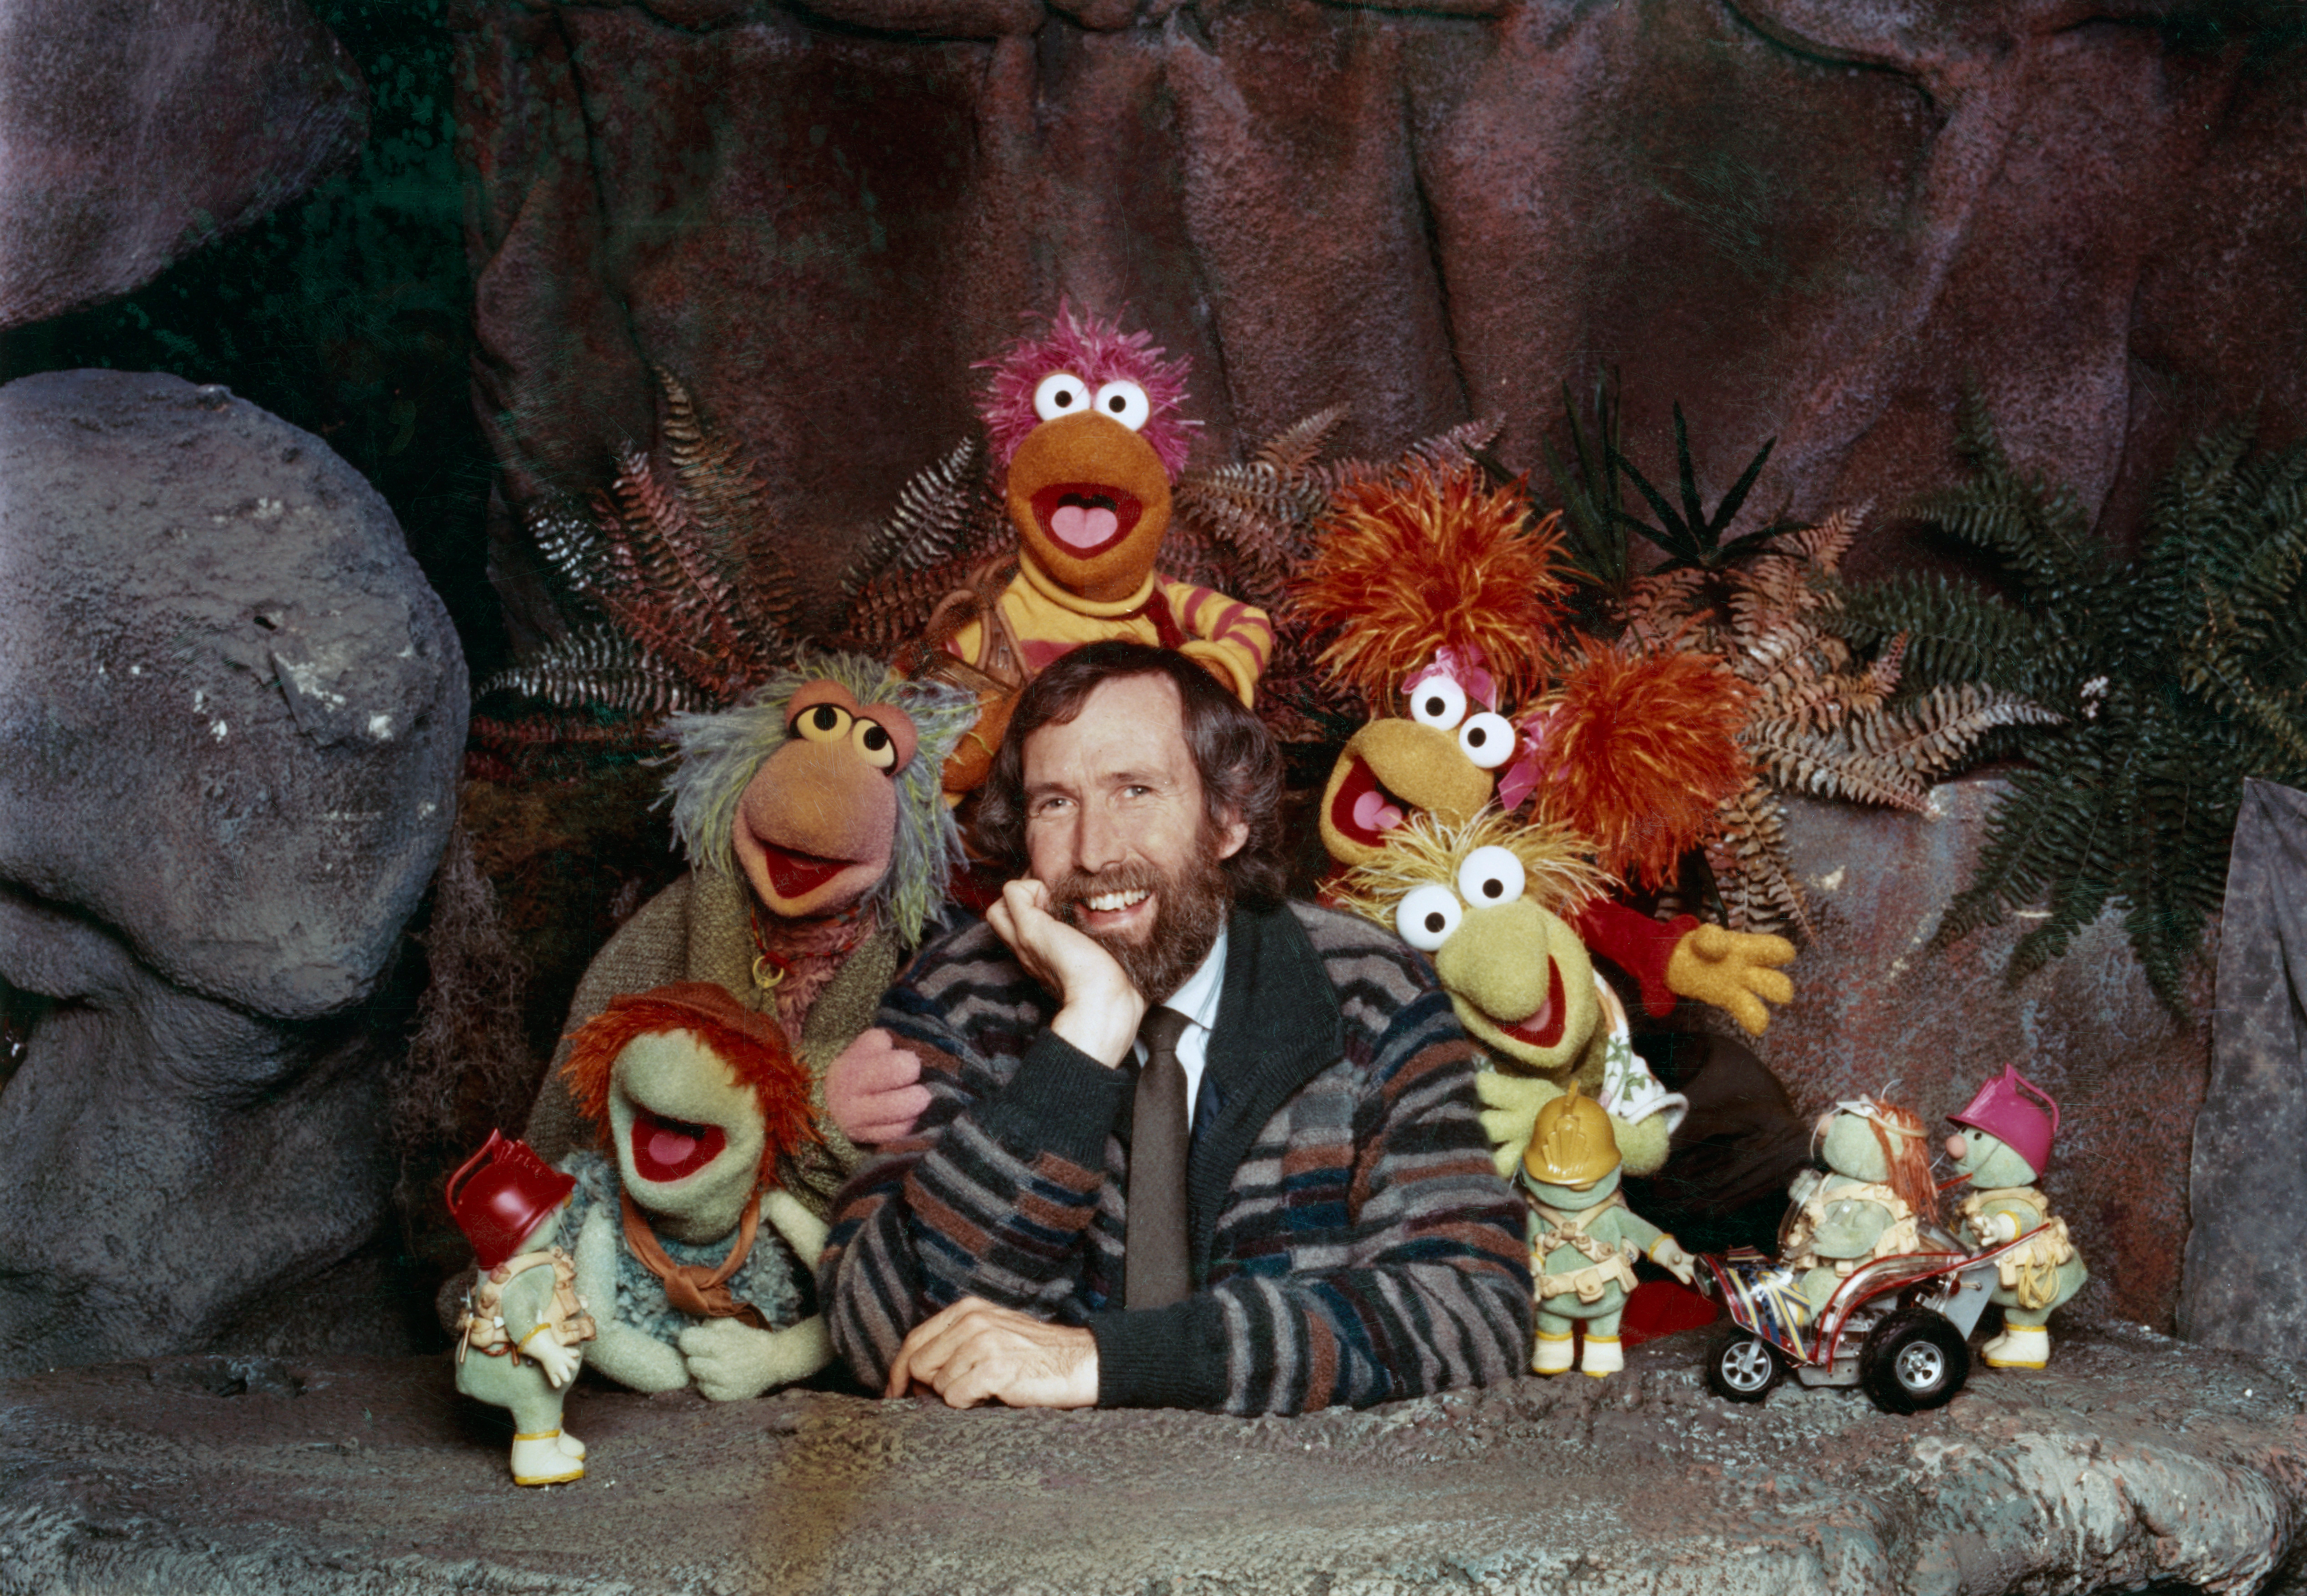 American puppeteer and filmmaker Jim Henson (1936 - 1990) with some of the Muppet cast from the children's TV show 'Fraggle Rock', circa 1985. Along with the diminutive Doozers in the foreground are the Fraggle characters (left to right) Boober, Mokey, Gobo, Red and Wembley.